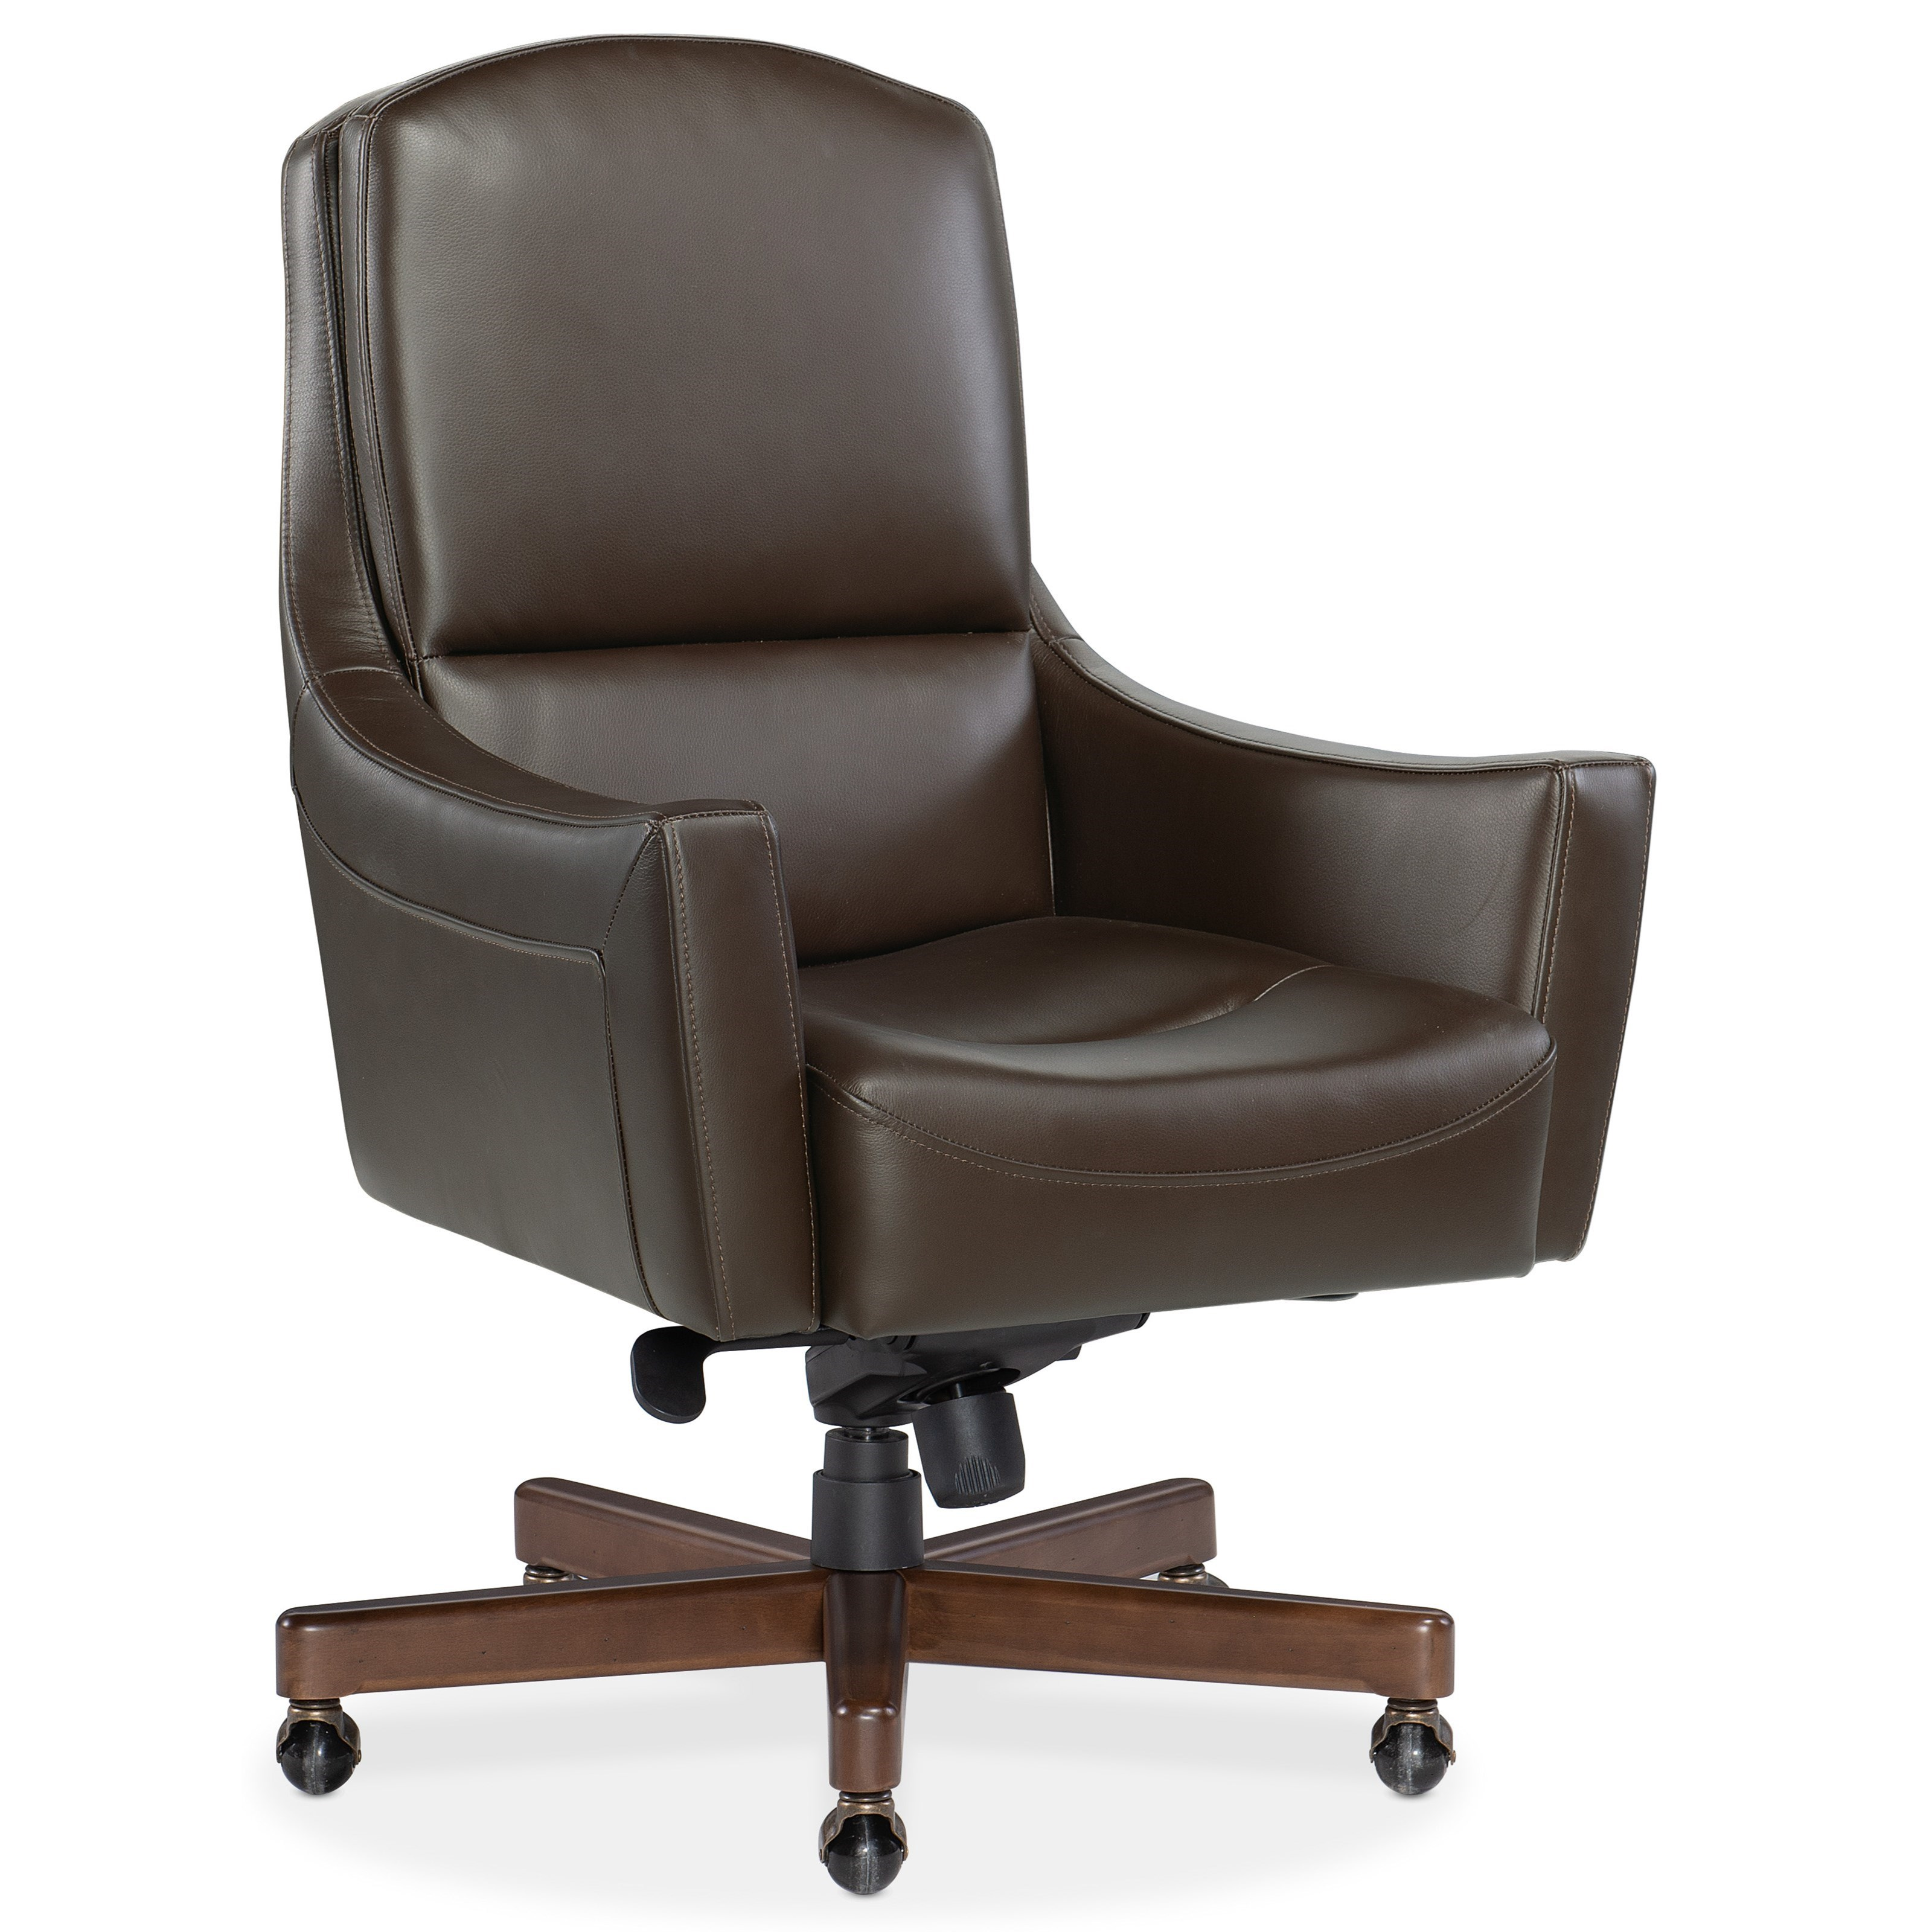 Executive Seating Wasila Executive Swivel Tilt Chair by Hooker Furniture at Miller Waldrop Furniture and Decor